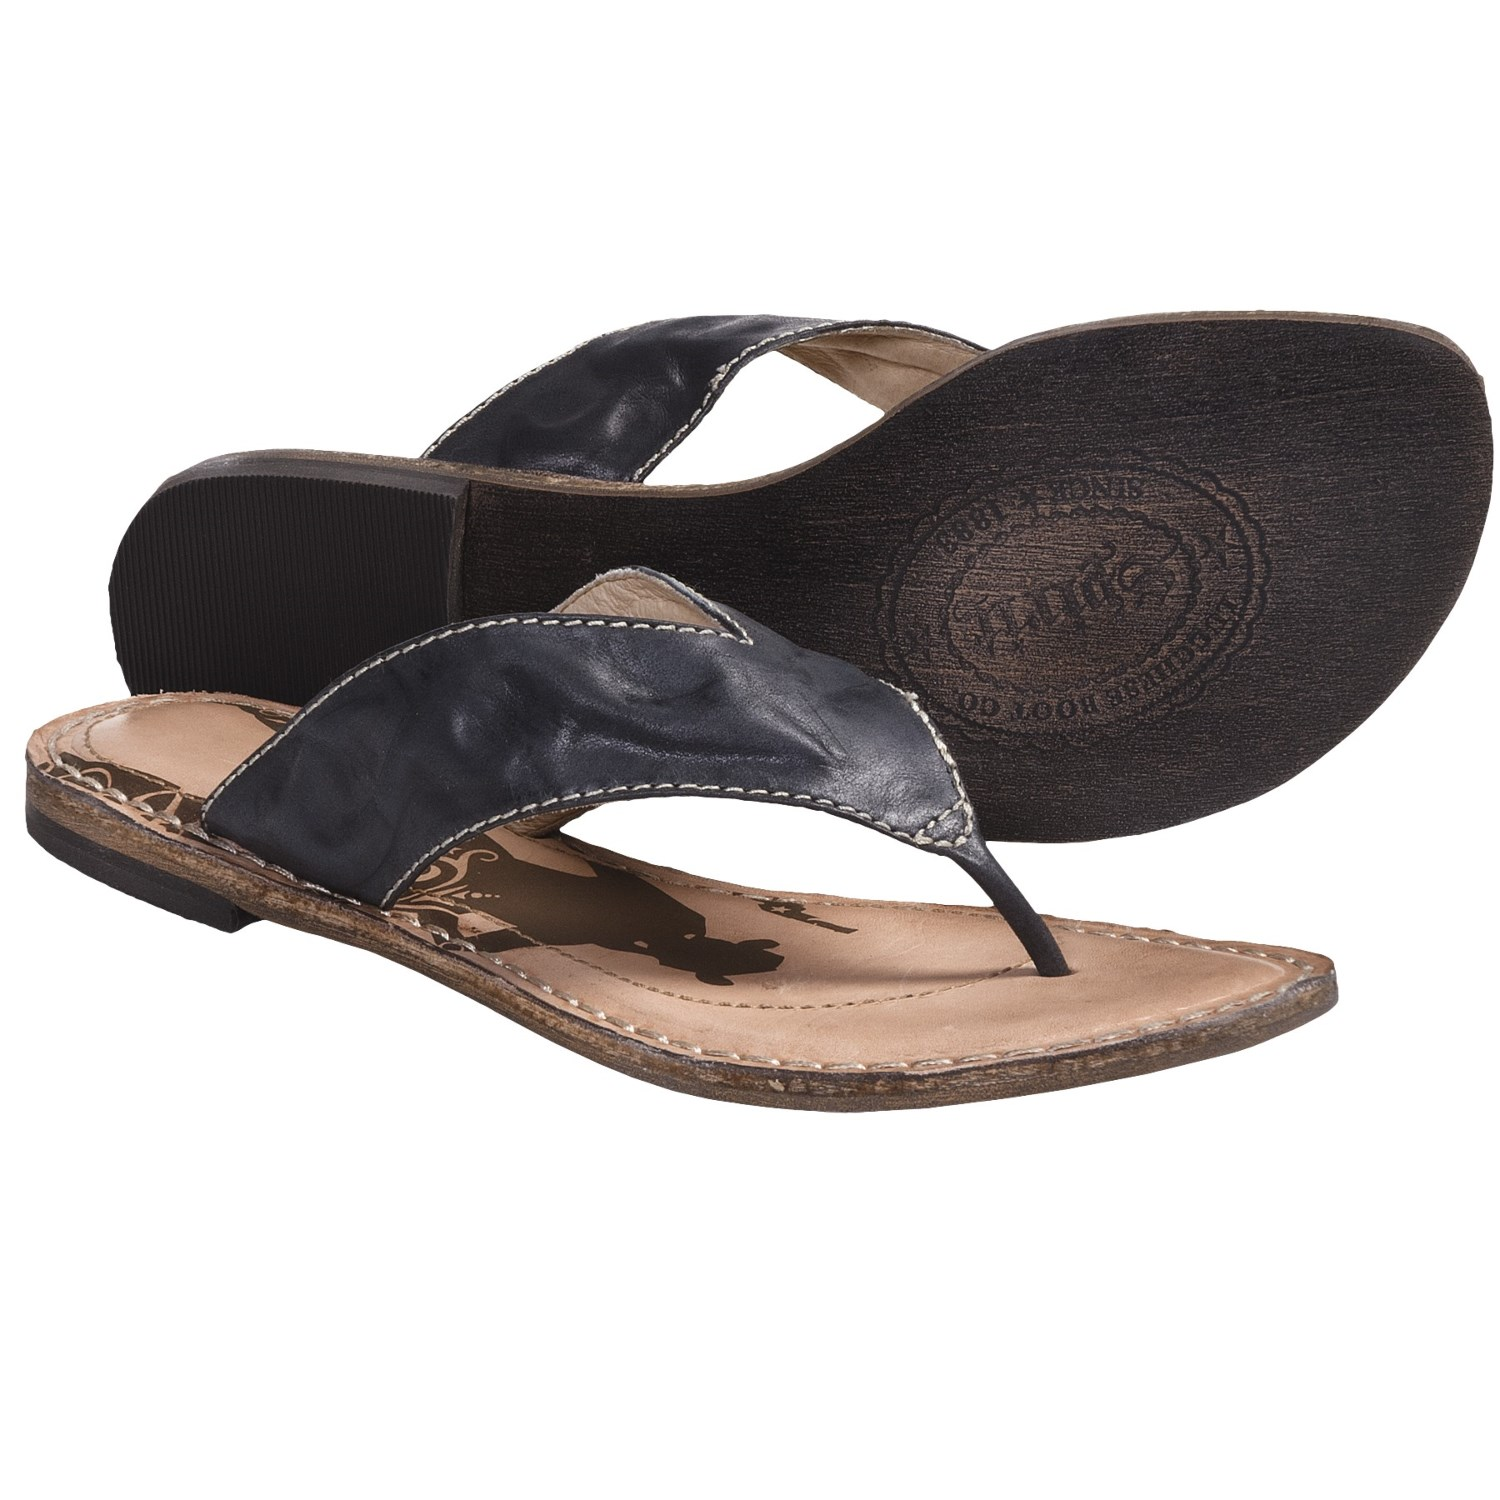 Black Womens Flip Flops Sale: Save Up to 50% Off! Shop neo-craft.gq's huge selection of Black Flip Flops for Women - Over styles available. FREE Shipping & Exchanges, and a .